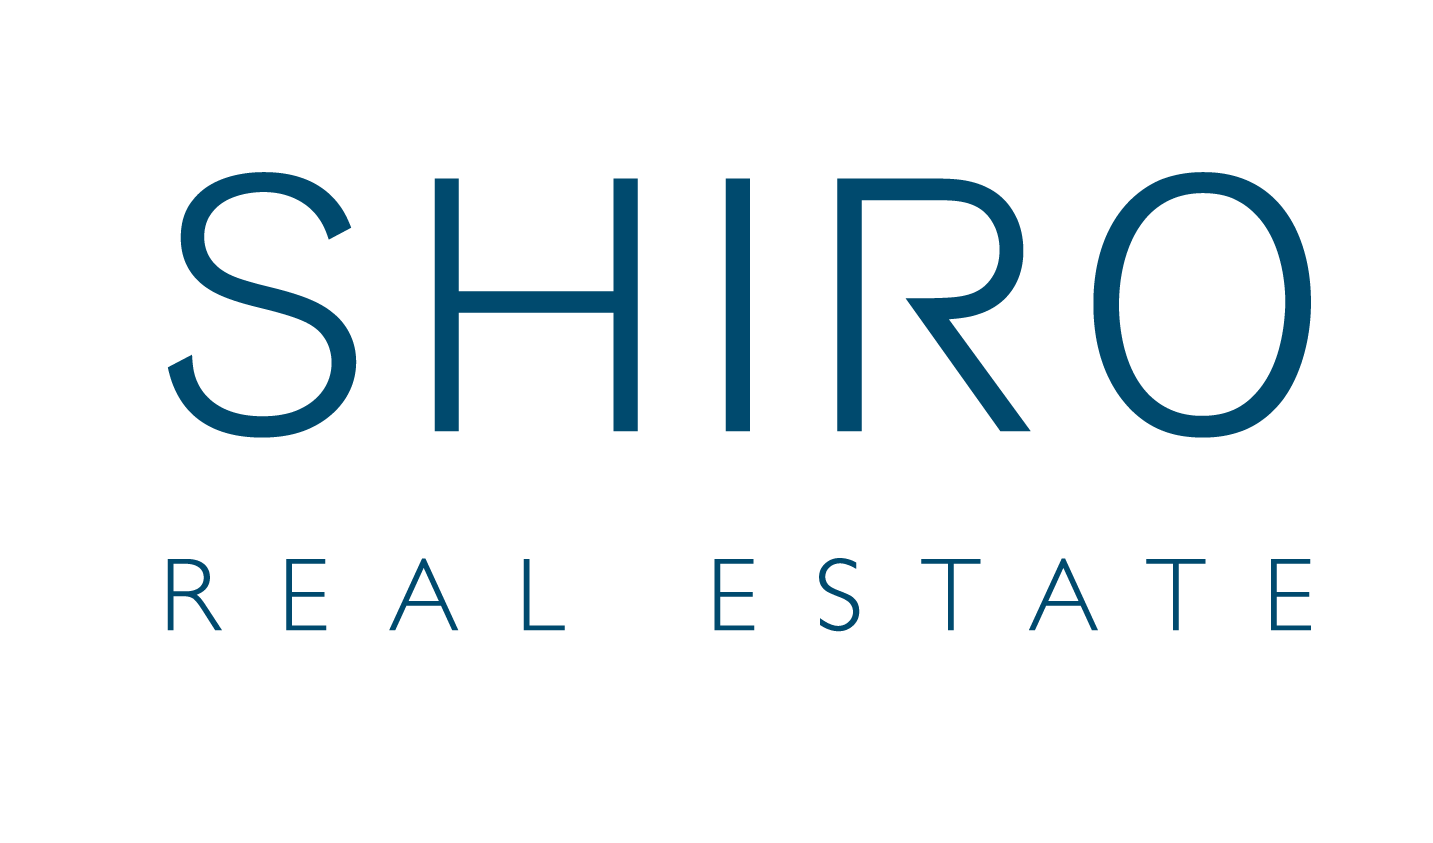 Shiro Real Estate